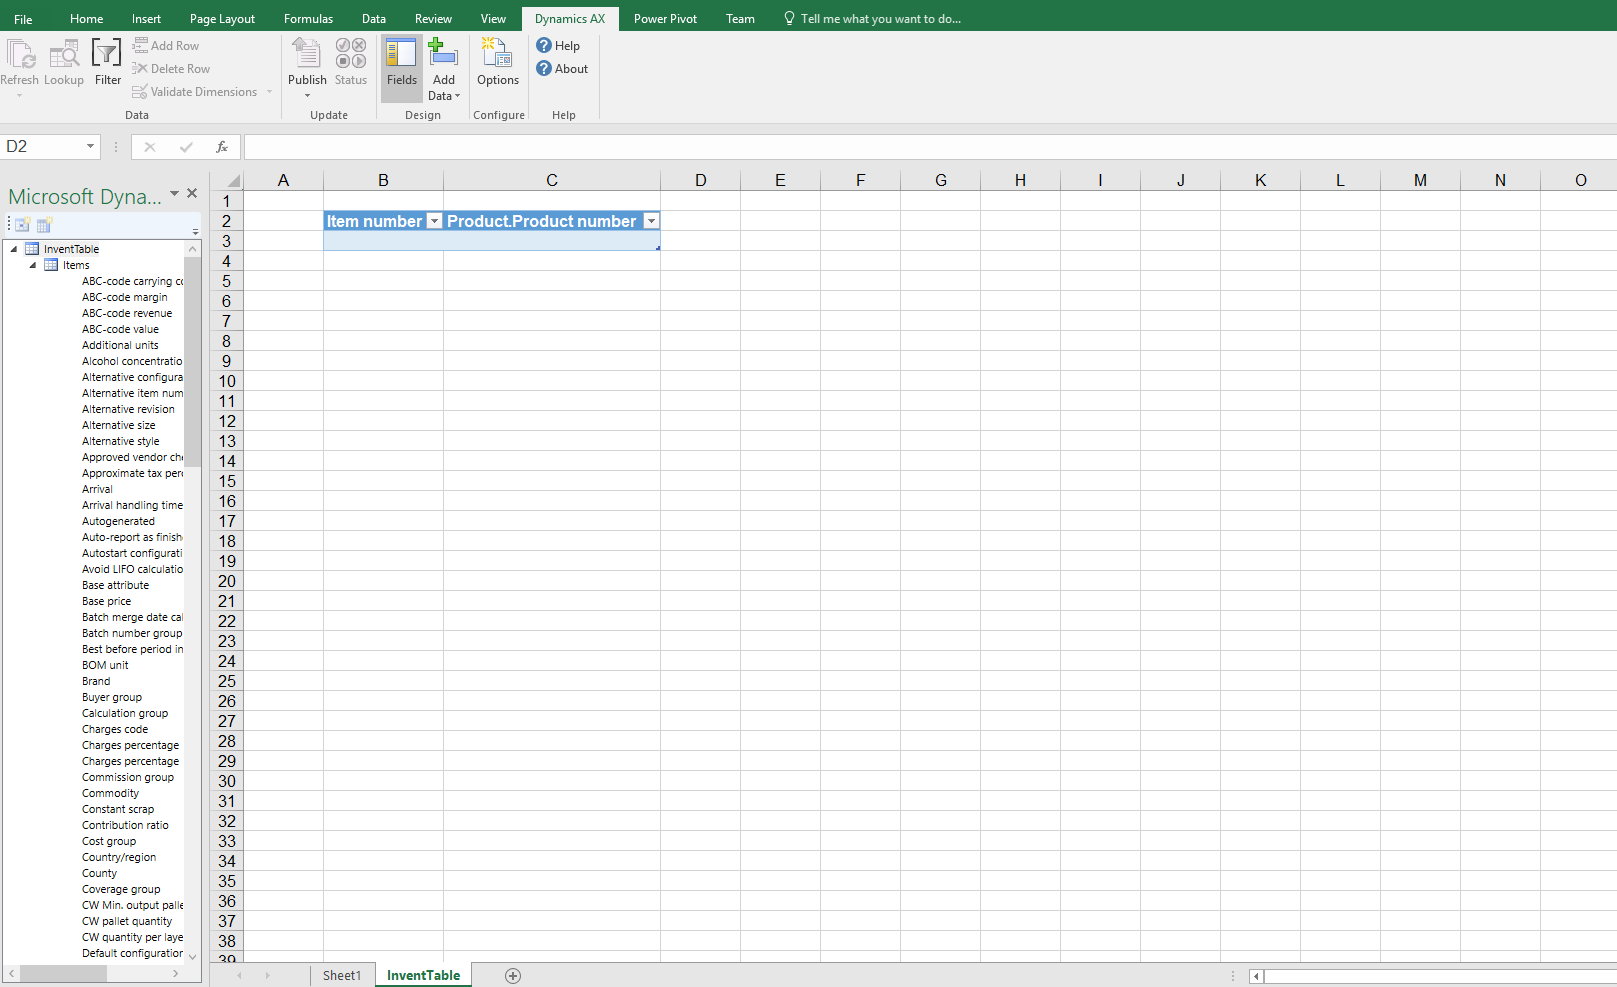 Excel - Dynamics AX (screenshot)